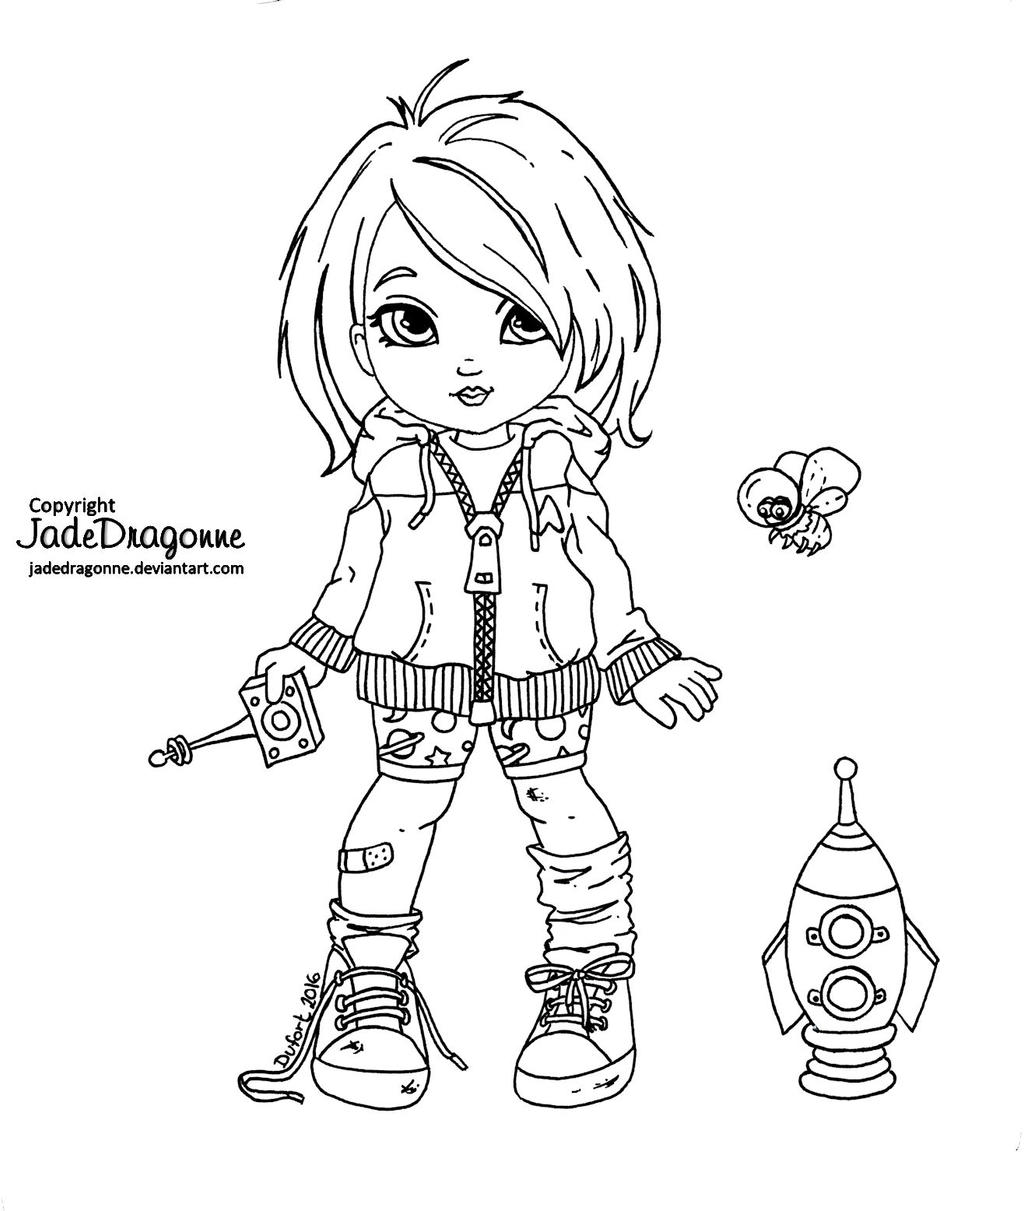 jadedragonne deviantart coloring pages - photo#23